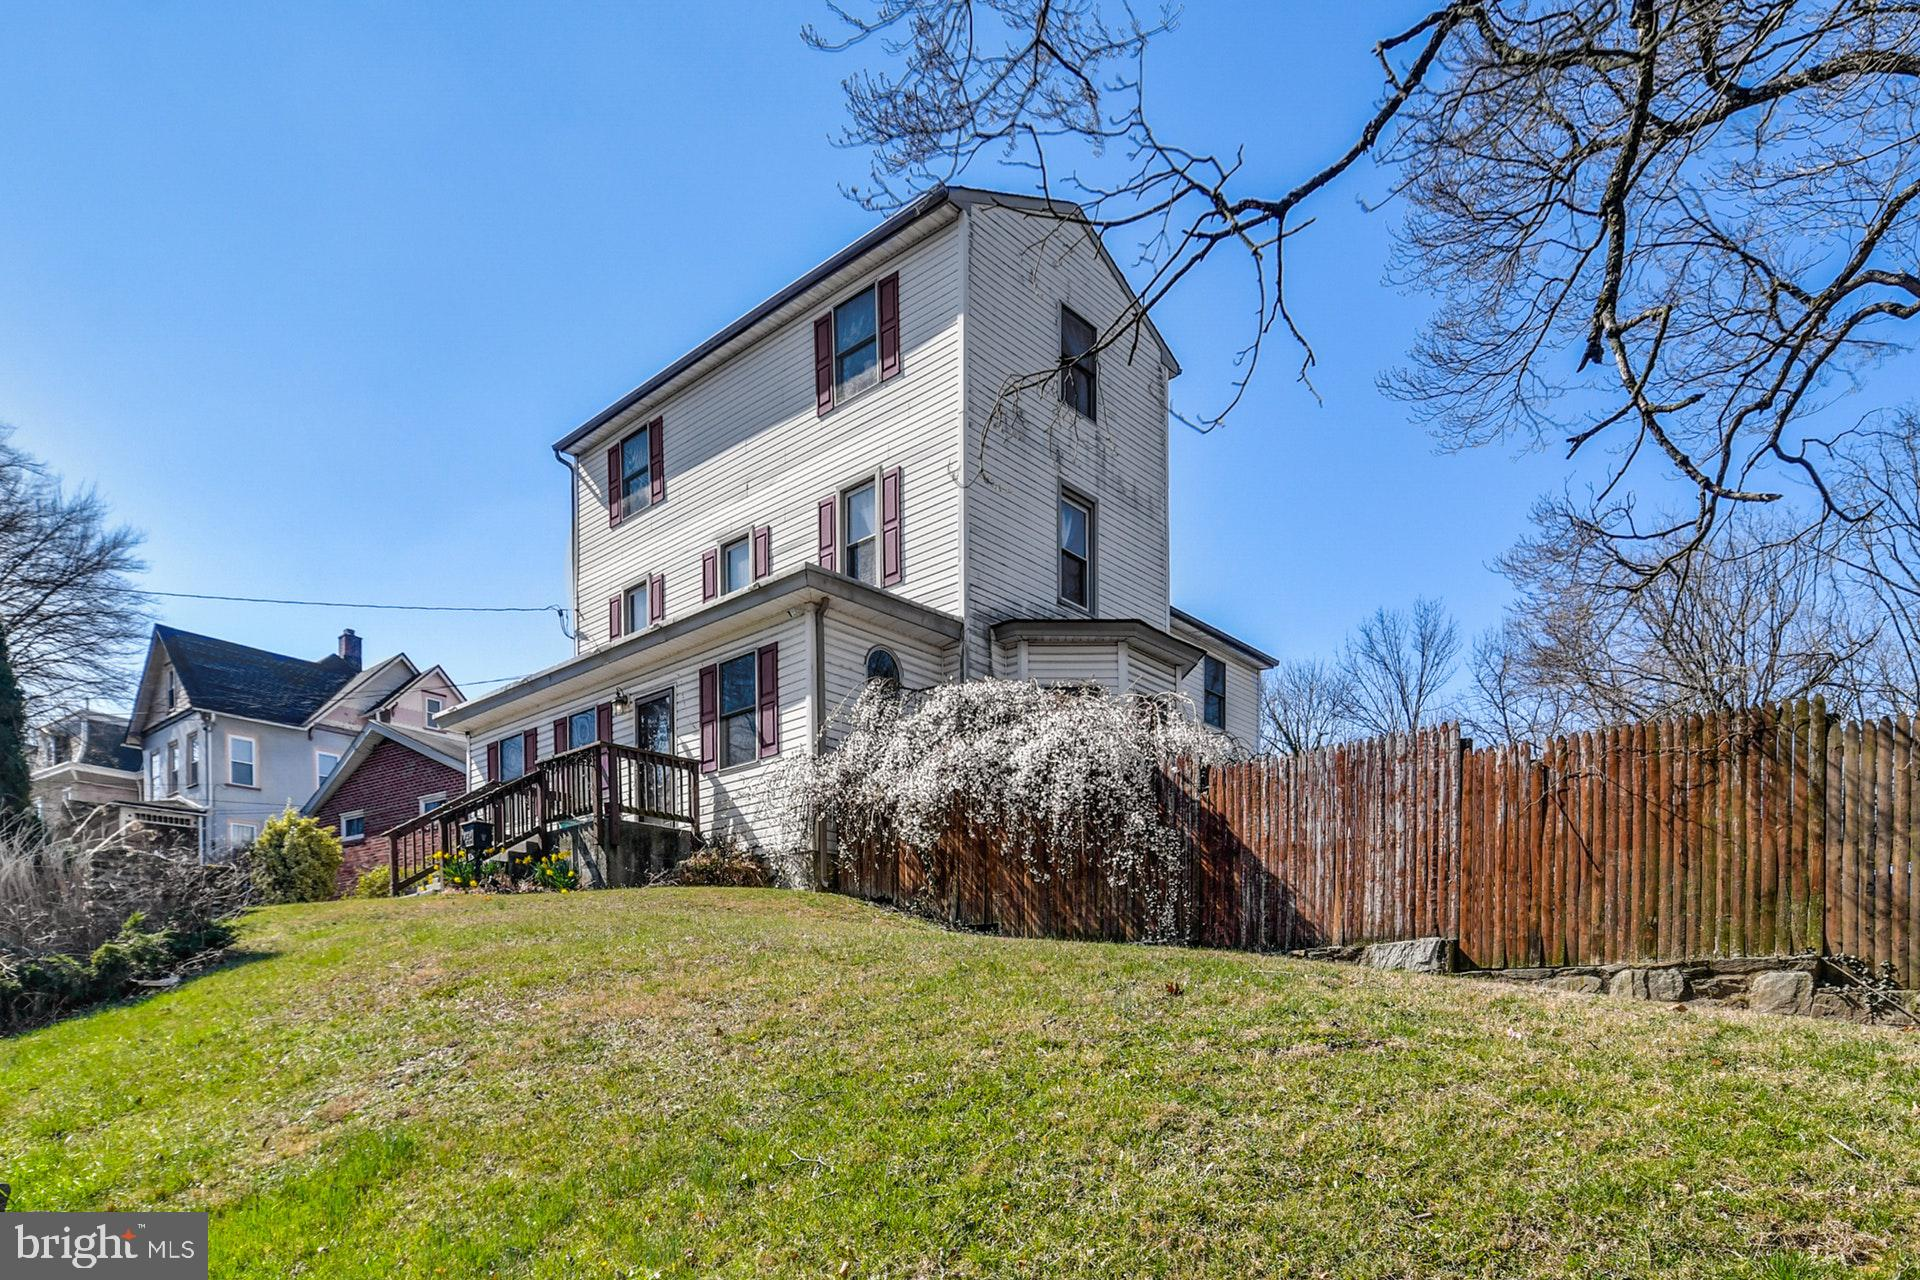 130 OLD SOLDIERS ROAD, CHELTENHAM, PA 19012